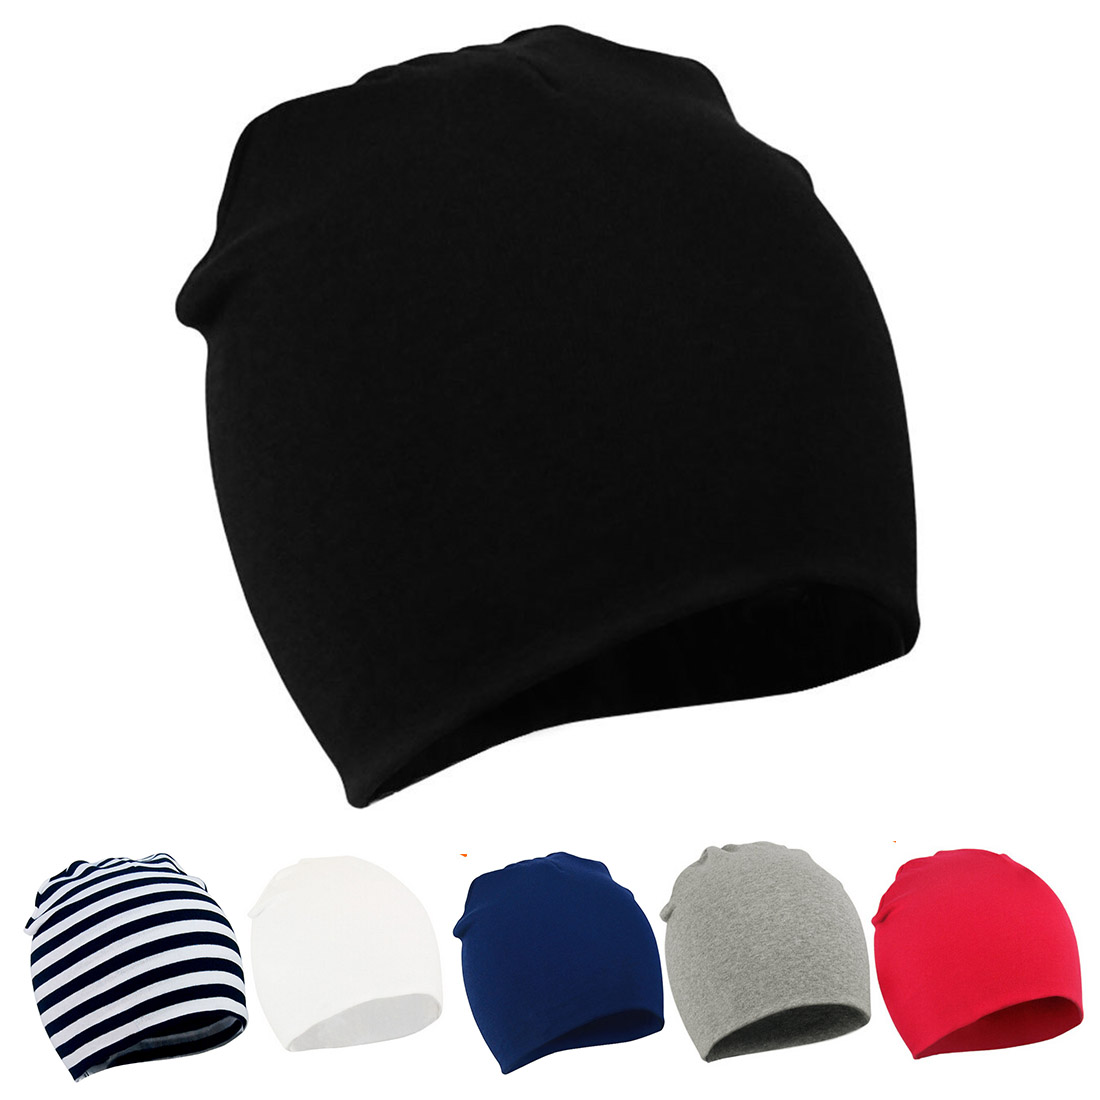 Baby Toddler Cotton Soft Cute Knit Kids Hat Beanies Cap Colour #1: white, black, navy, gray, red, black and white stripes